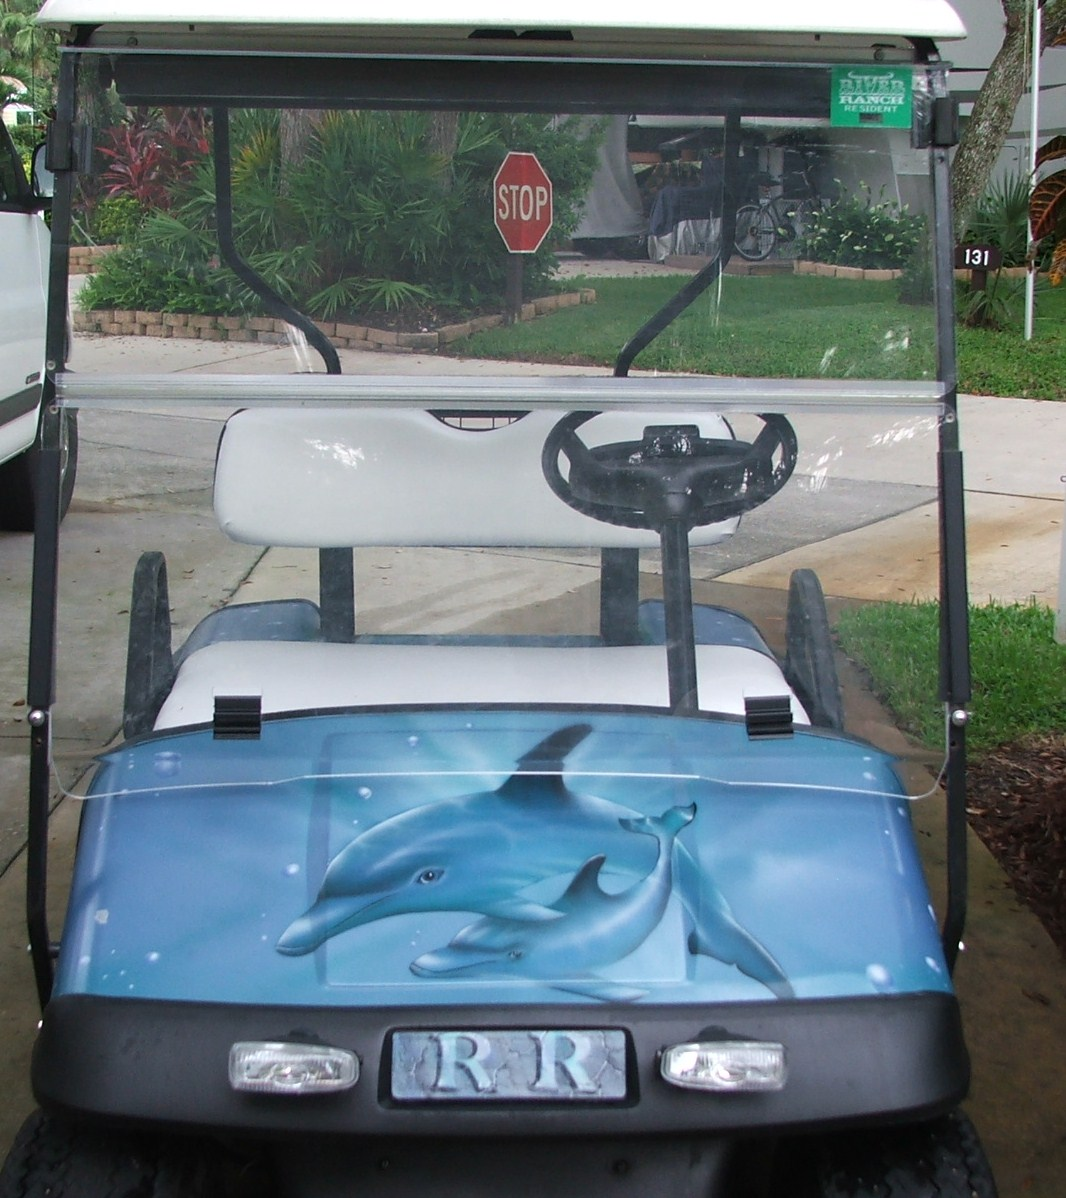 a golf cart in Florida.